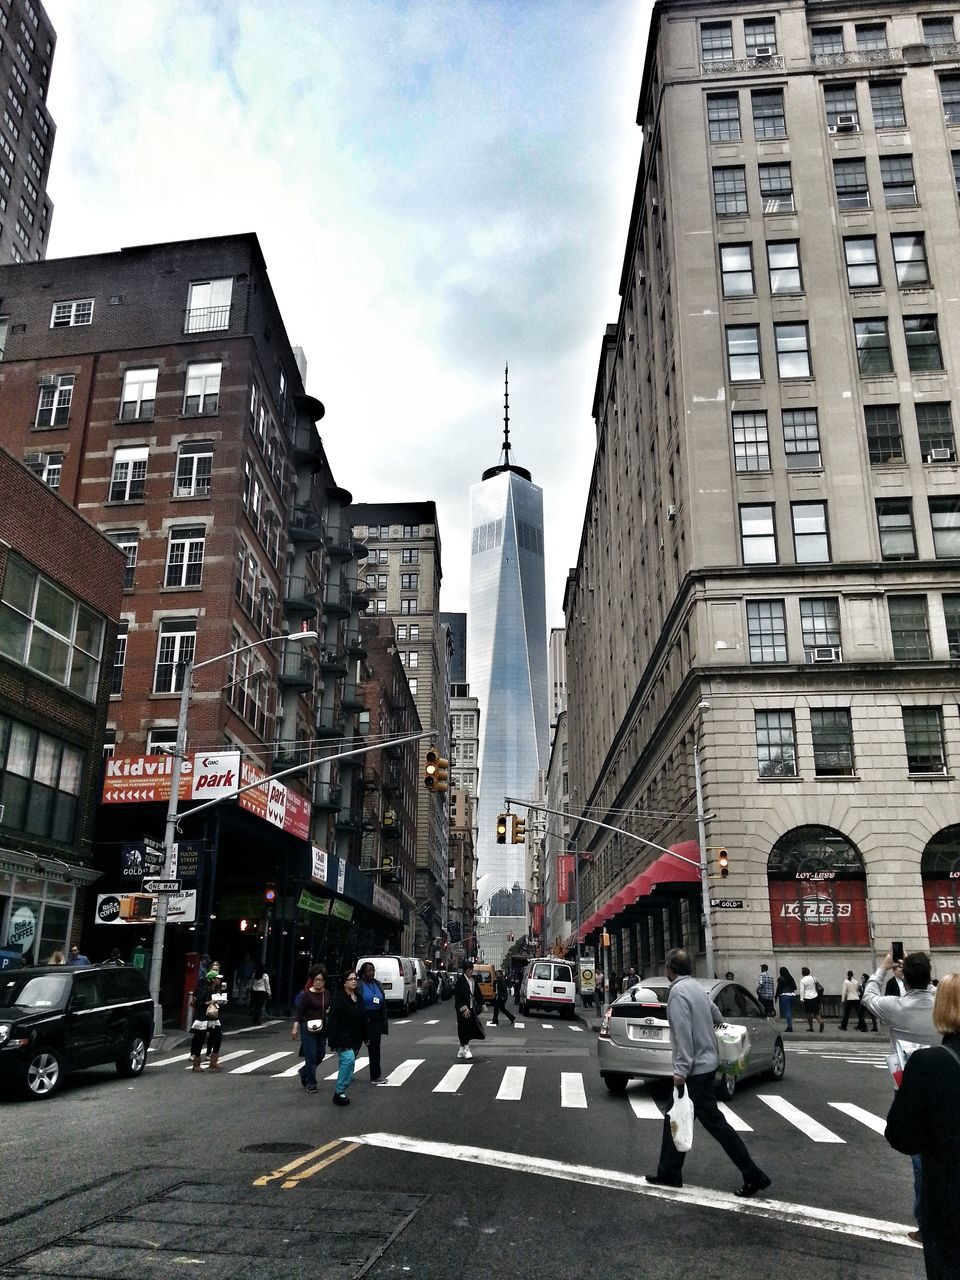 city, architecture, street, walking, building exterior, road, modern, pedestrian, group of people, sky, outdoors, day, people